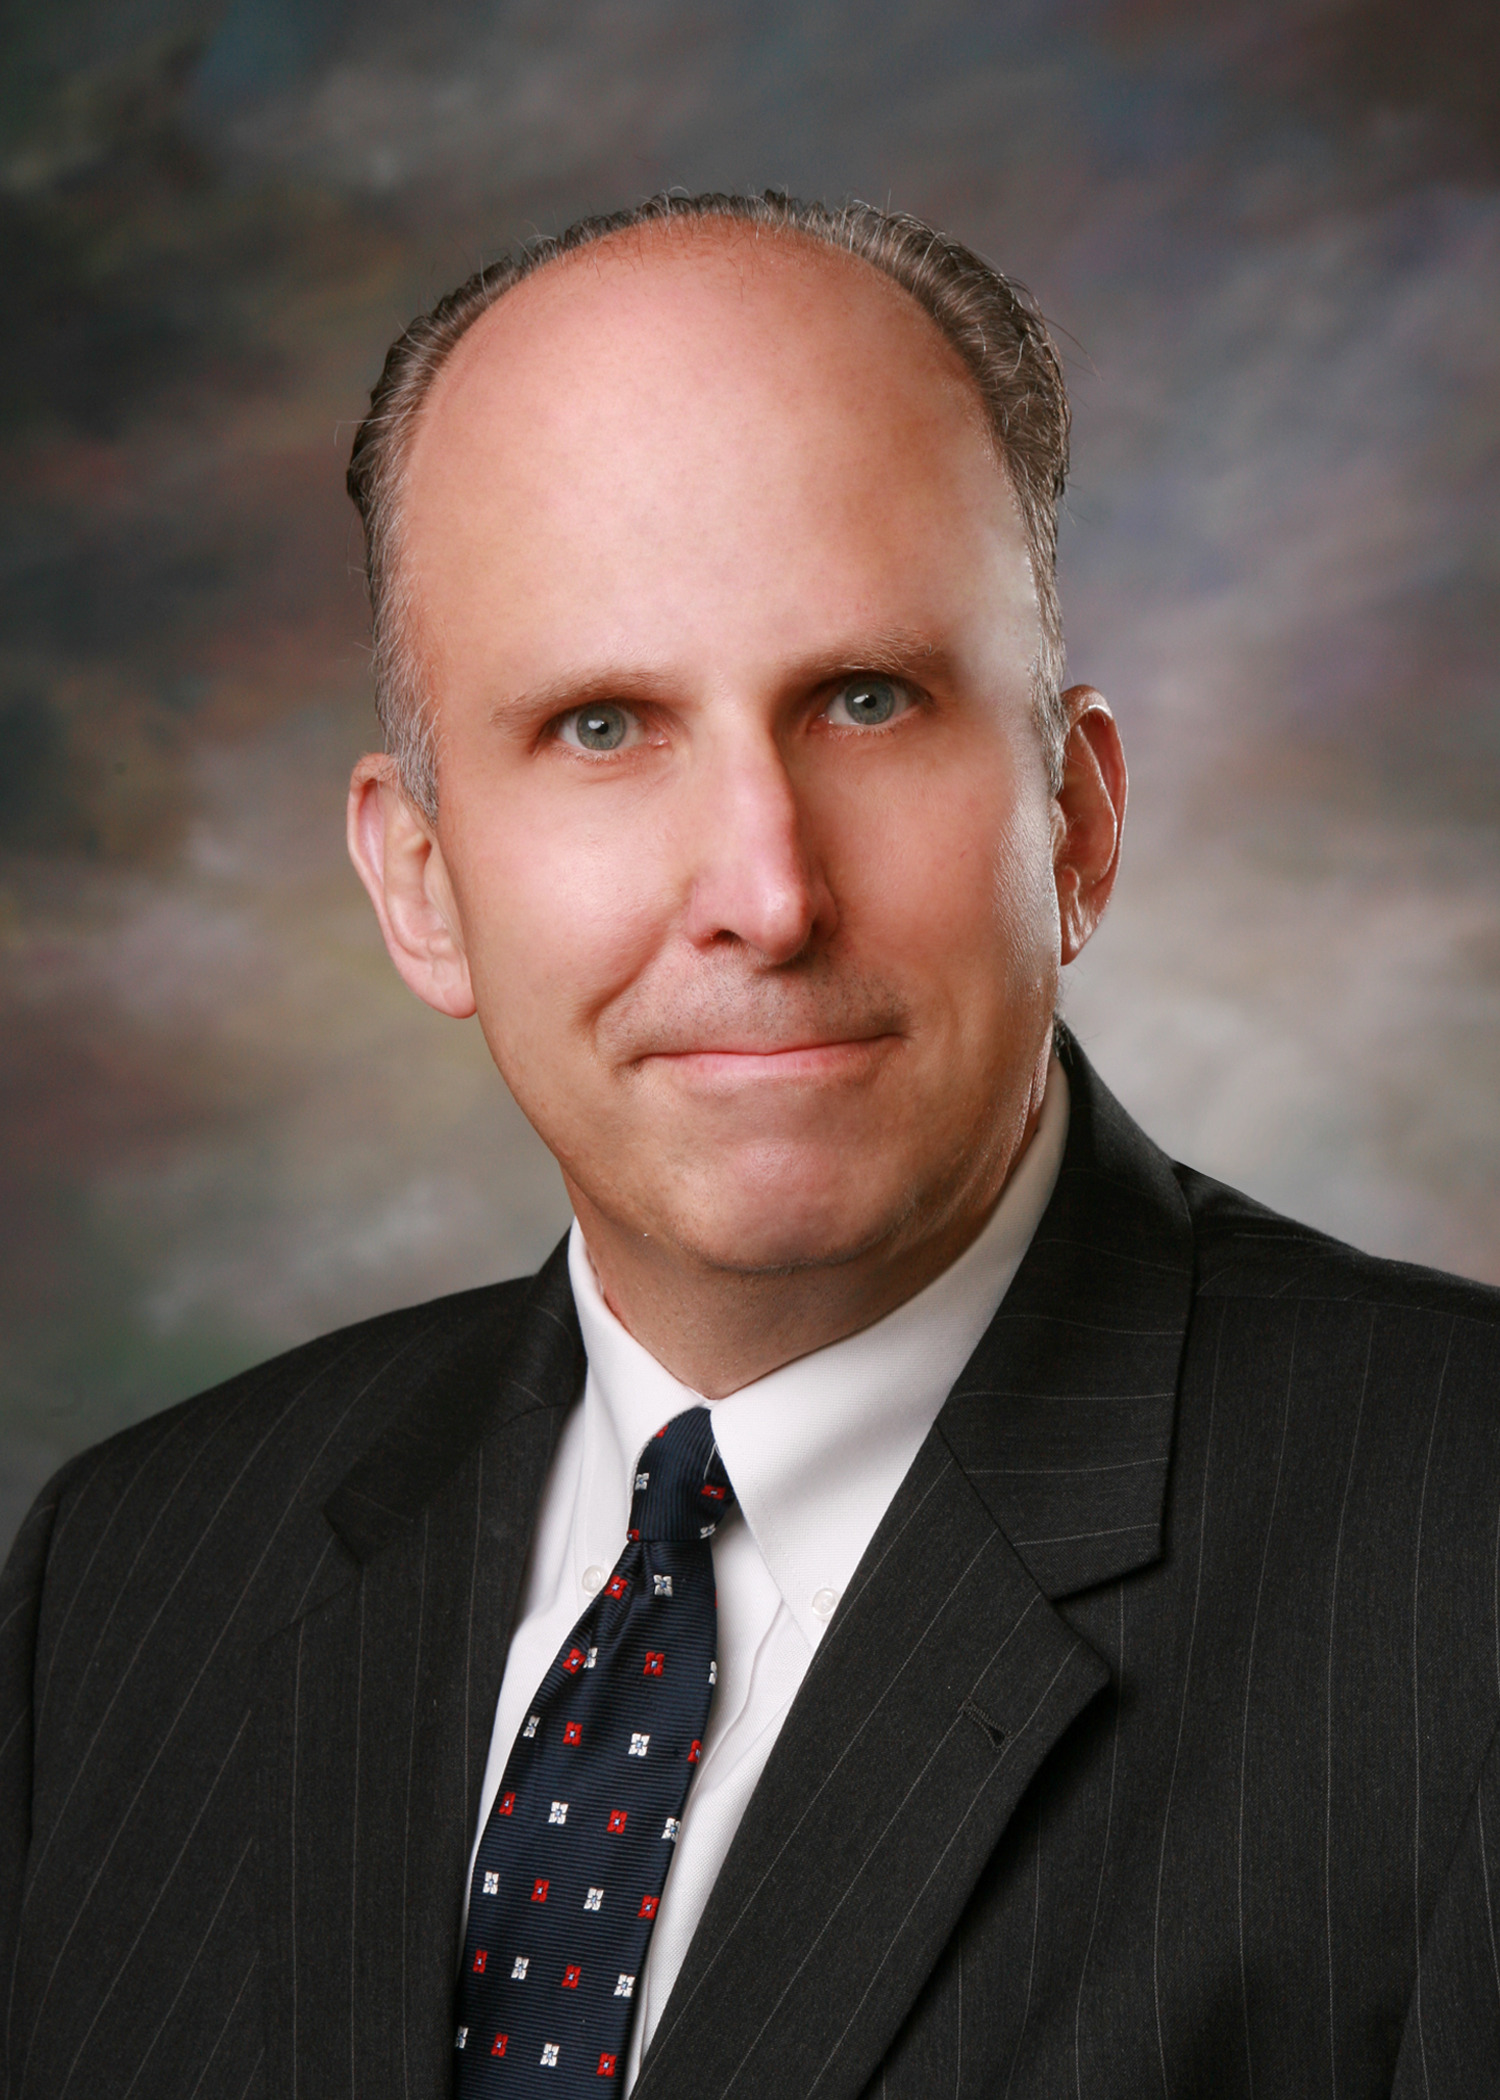 Partner of Local Accounting Firm Named 'Distinguished Advocate'